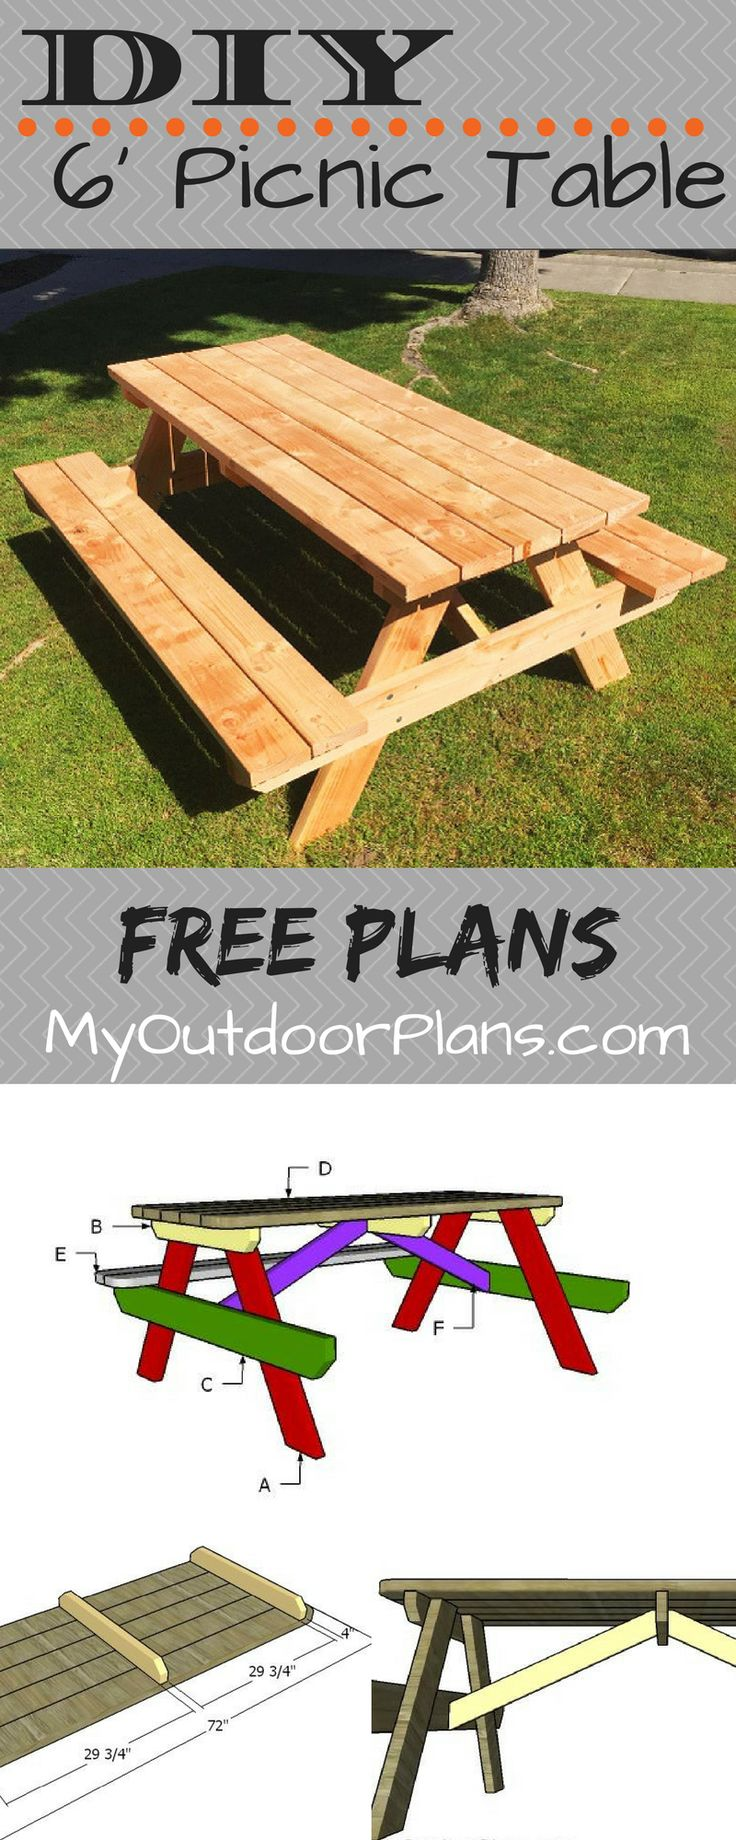 Free Plans For Building A 6 Foot Picnic Table This Table